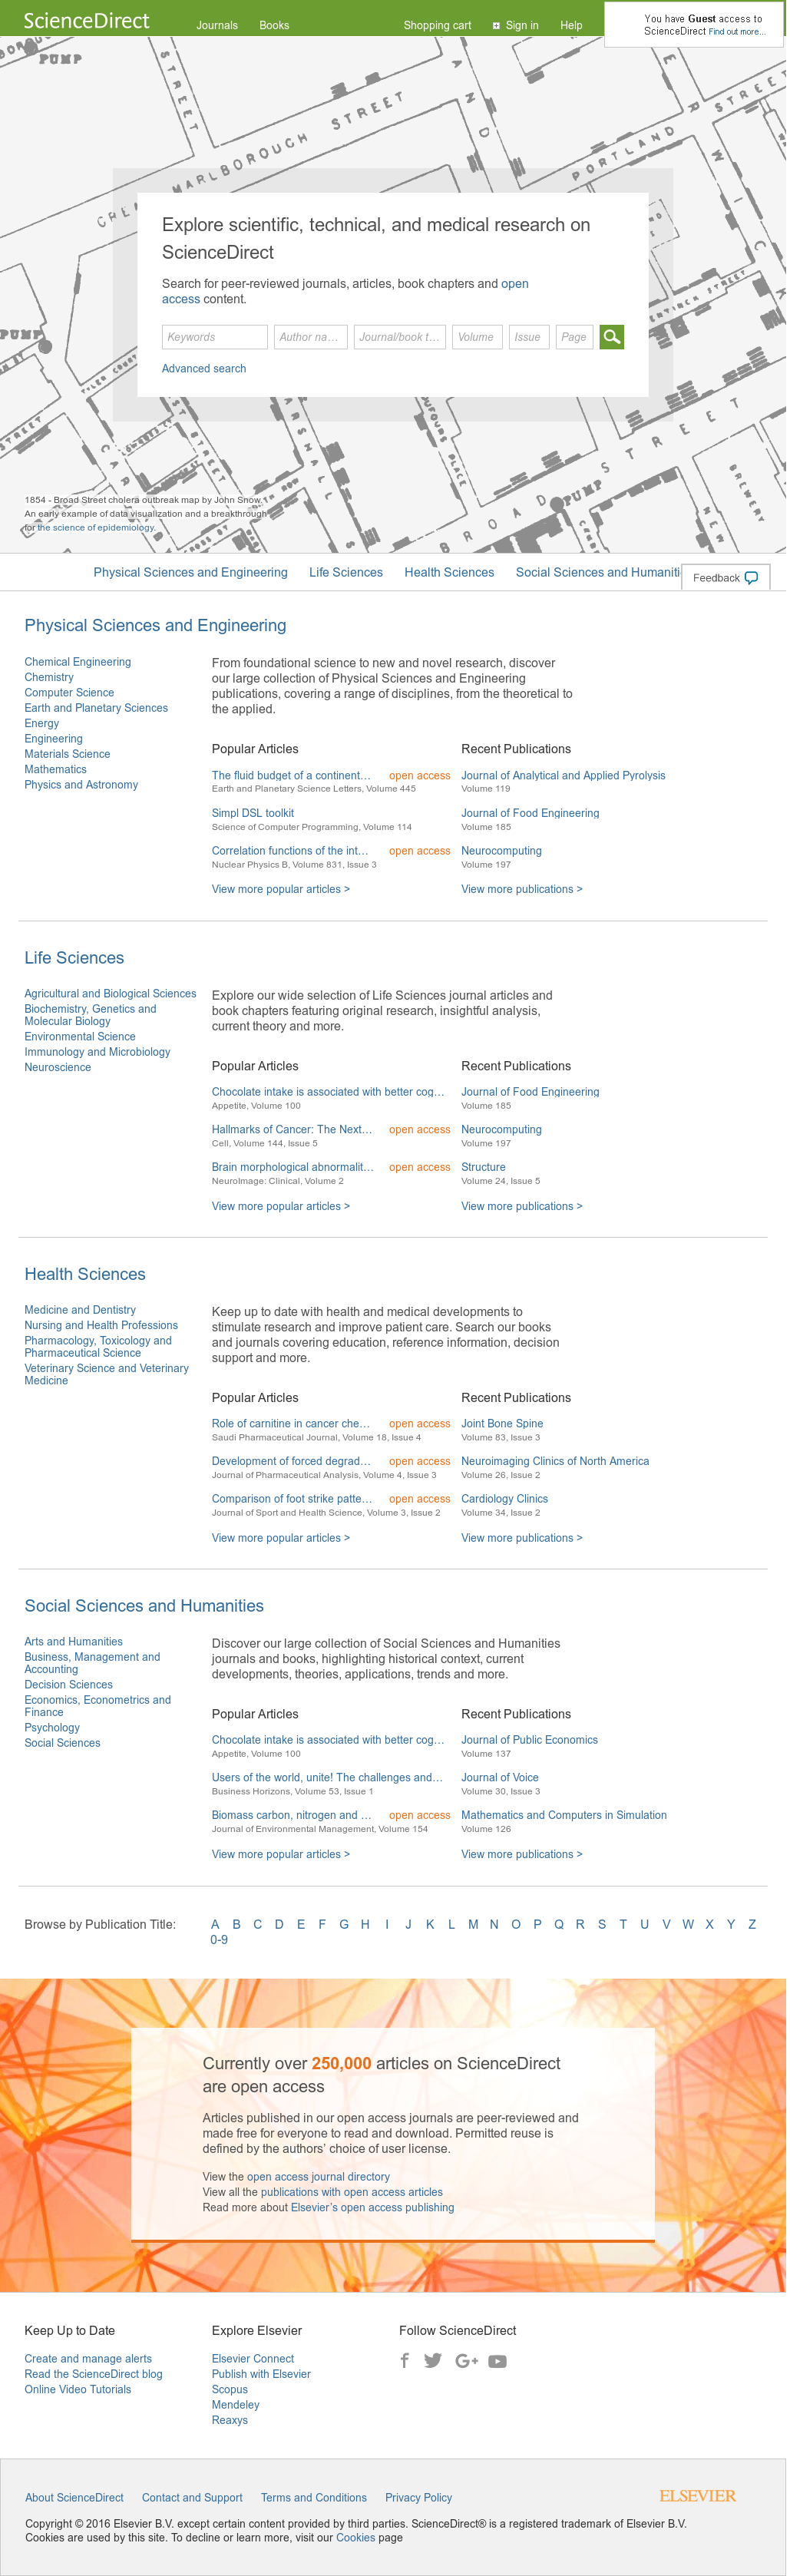 ScienceDirect Competitors, Revenue and Employees - Owler Company Profile